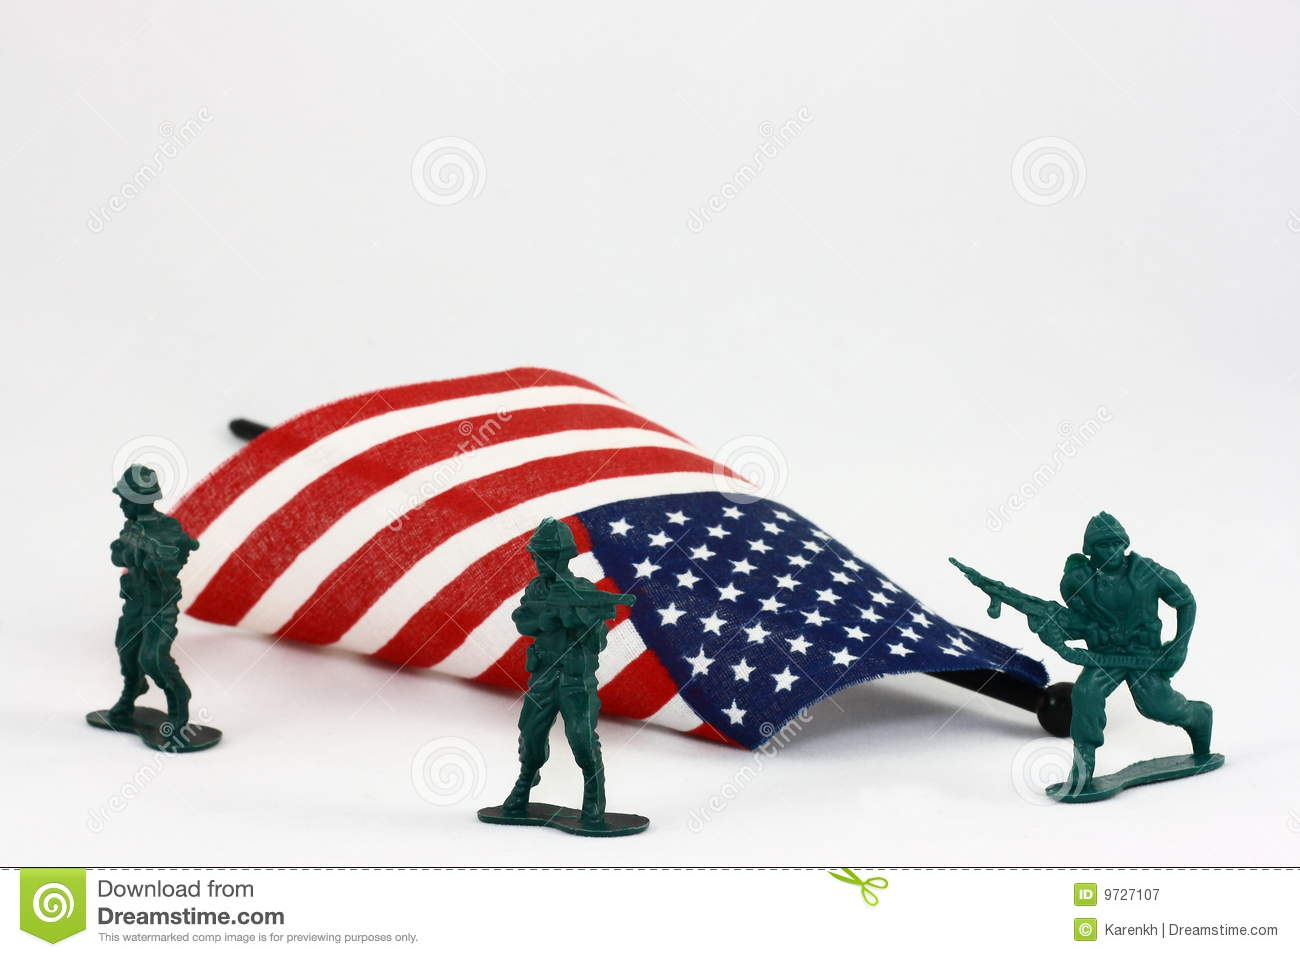 PROTECTING THE AMERICAN FLAG